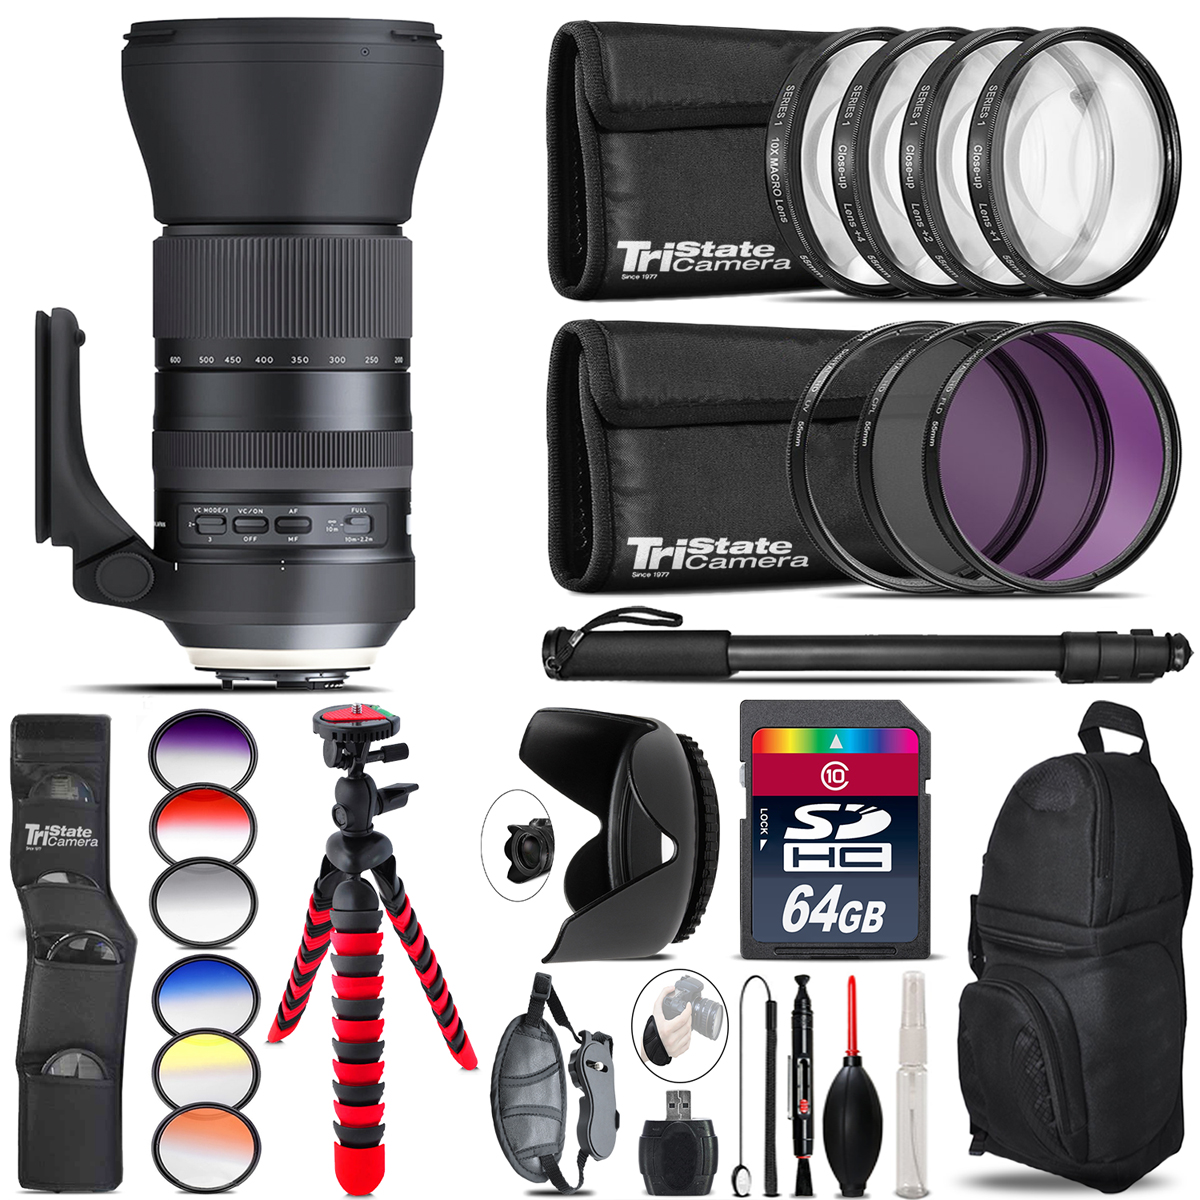 Tamron 150-600mm G2 for Nikon + Graduated Color Filter - 64GB Accessory Kit *FREE SHIPPING*